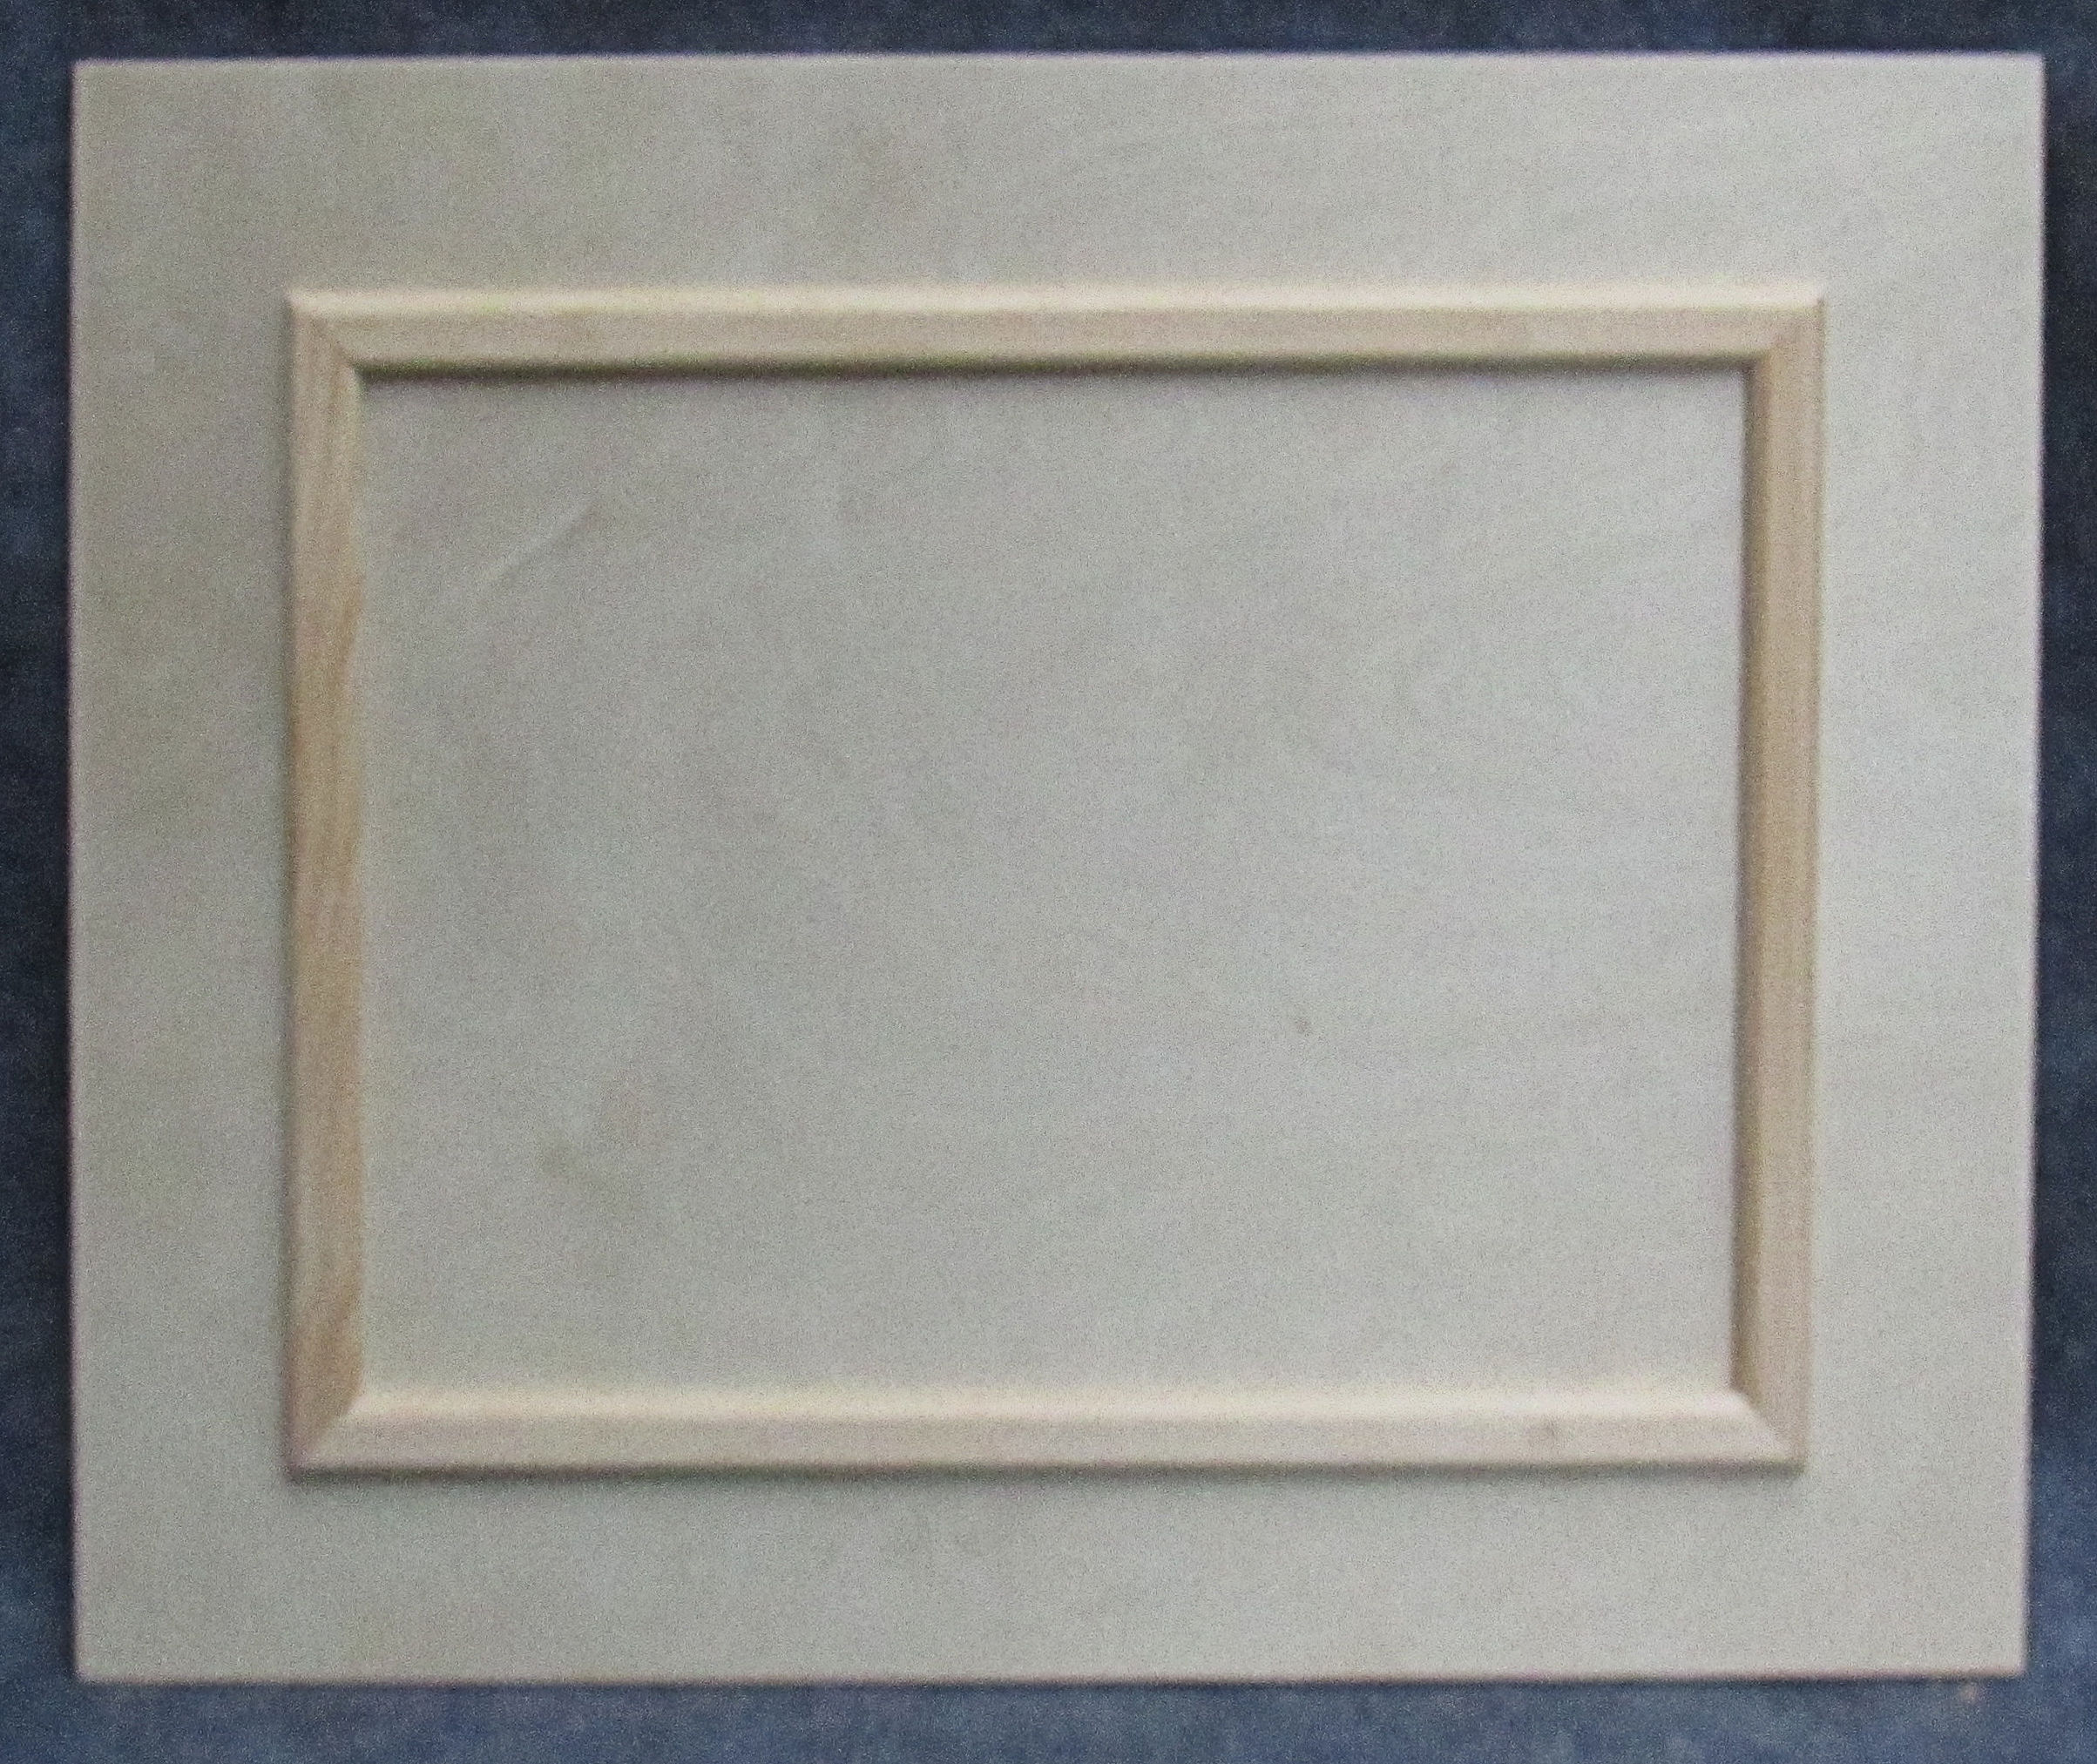 wood-frame-20-x16-or-16-x-13.jpg